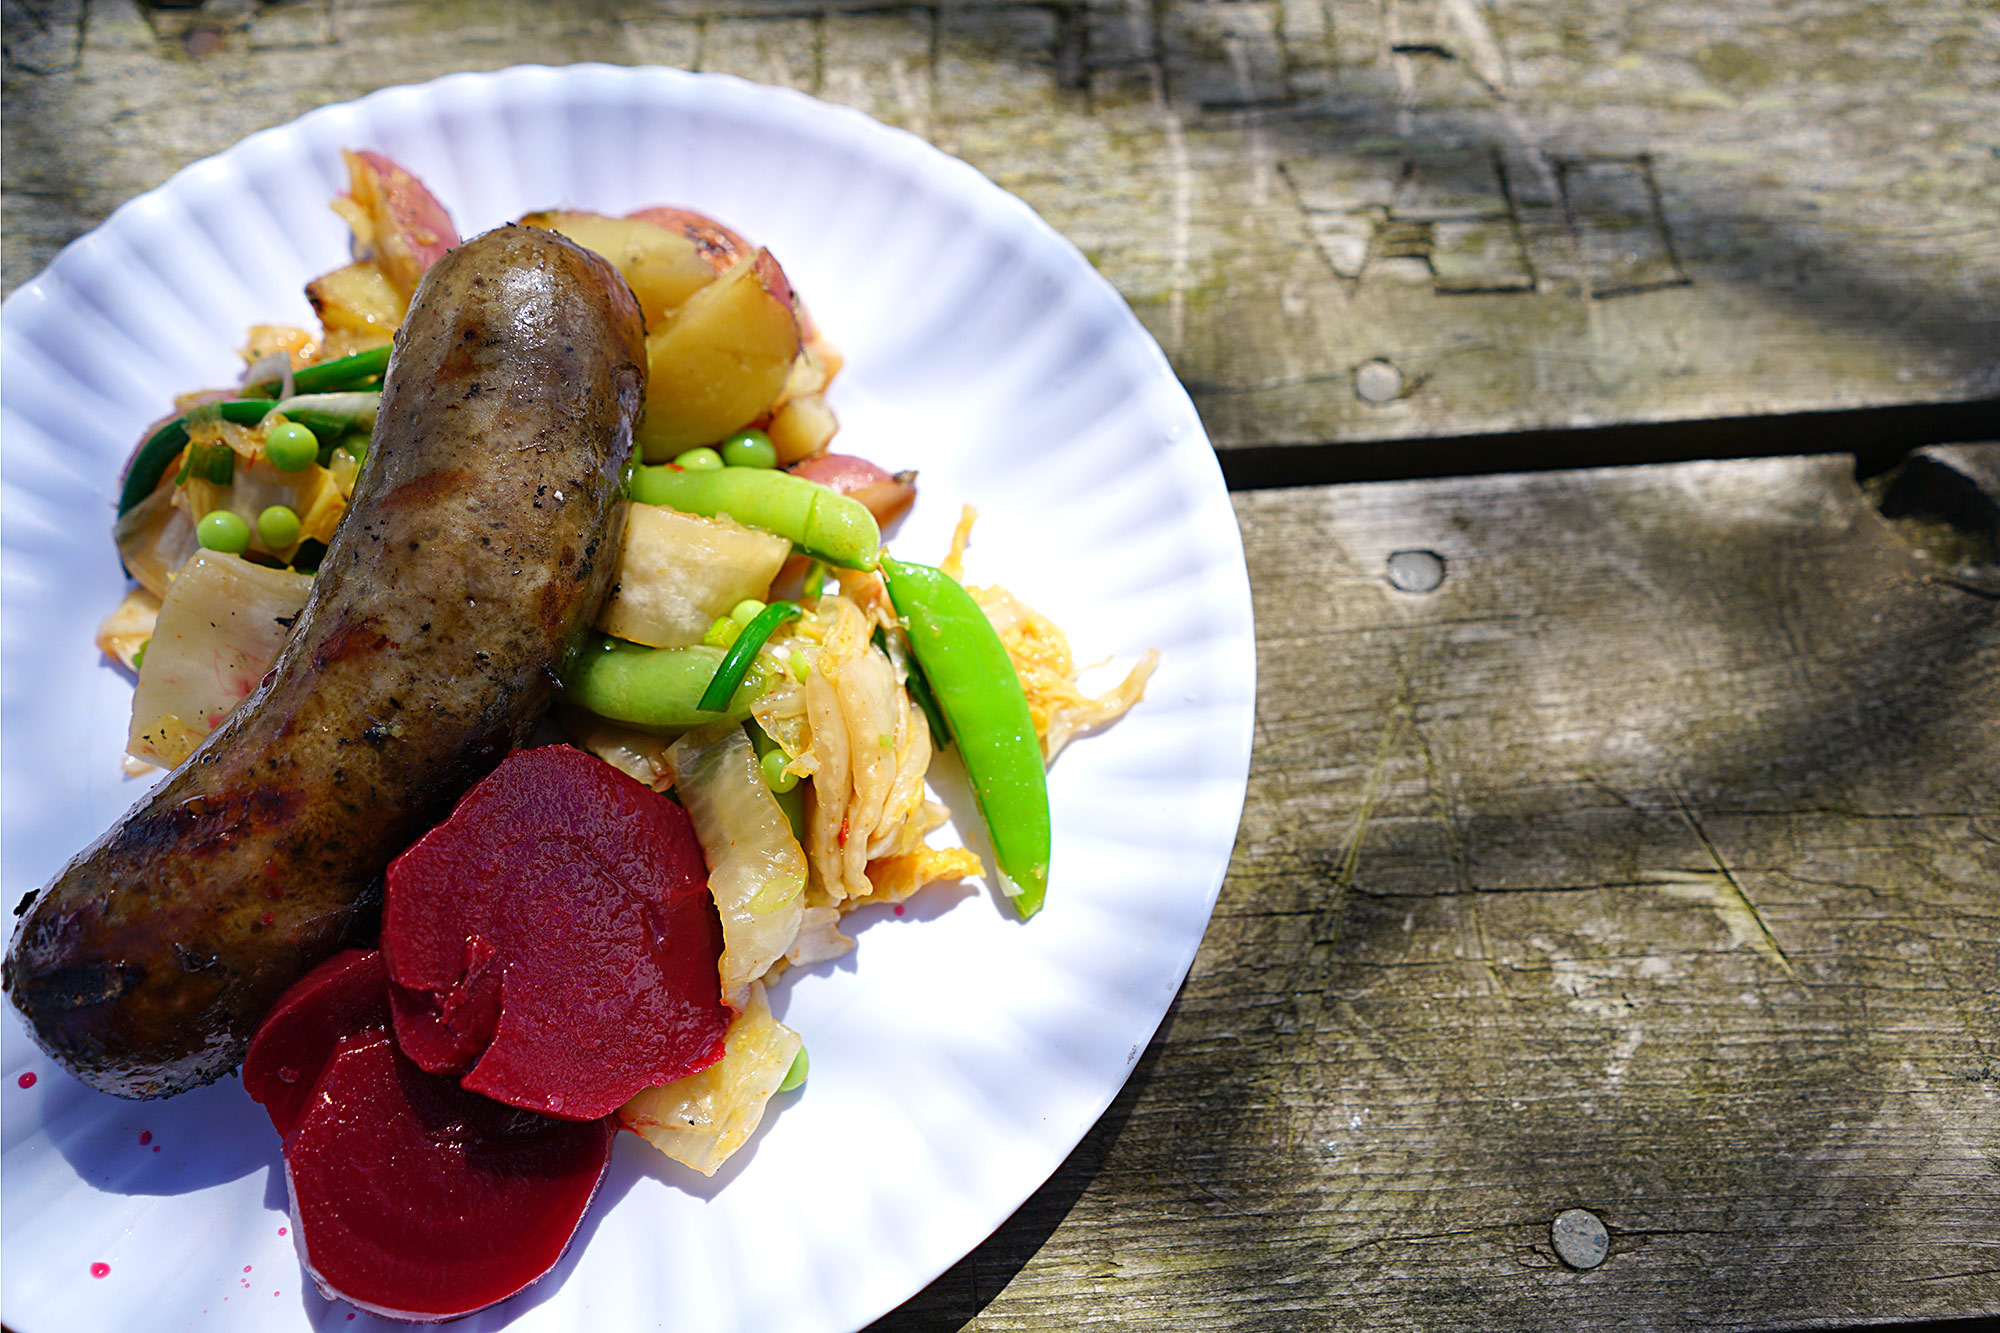 Musky Country Salad with Bratwurst